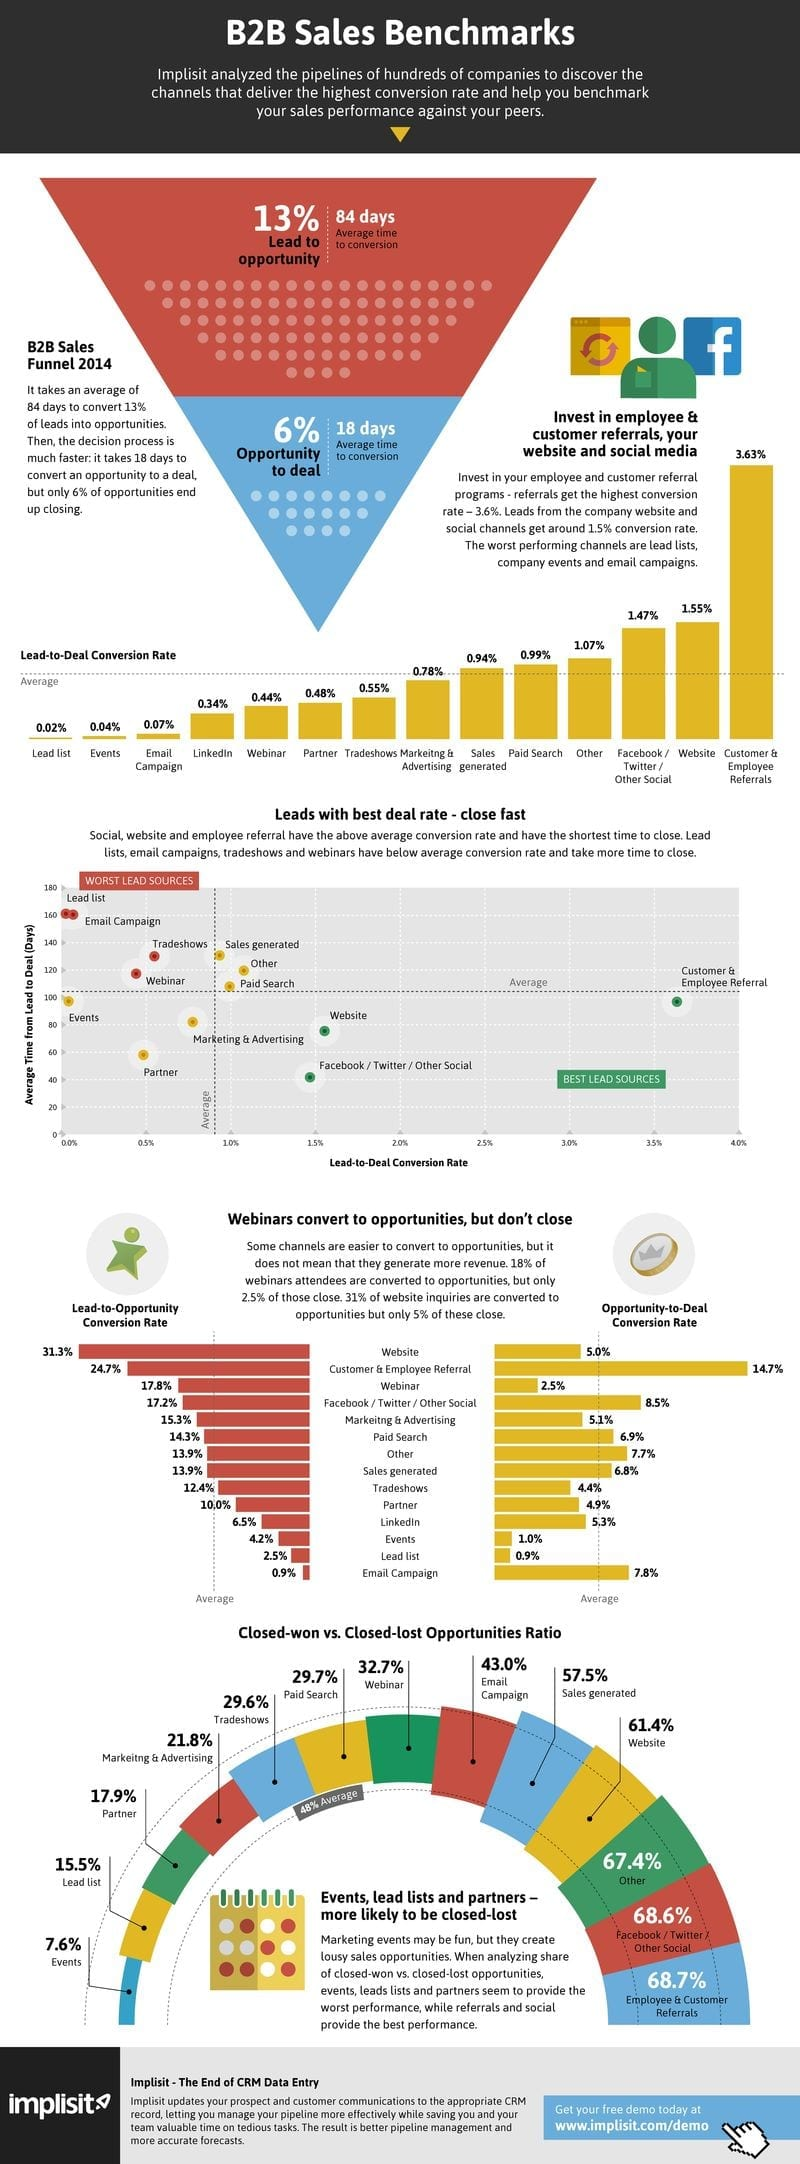 2014-11-10 Benchmarks Infographic (2)